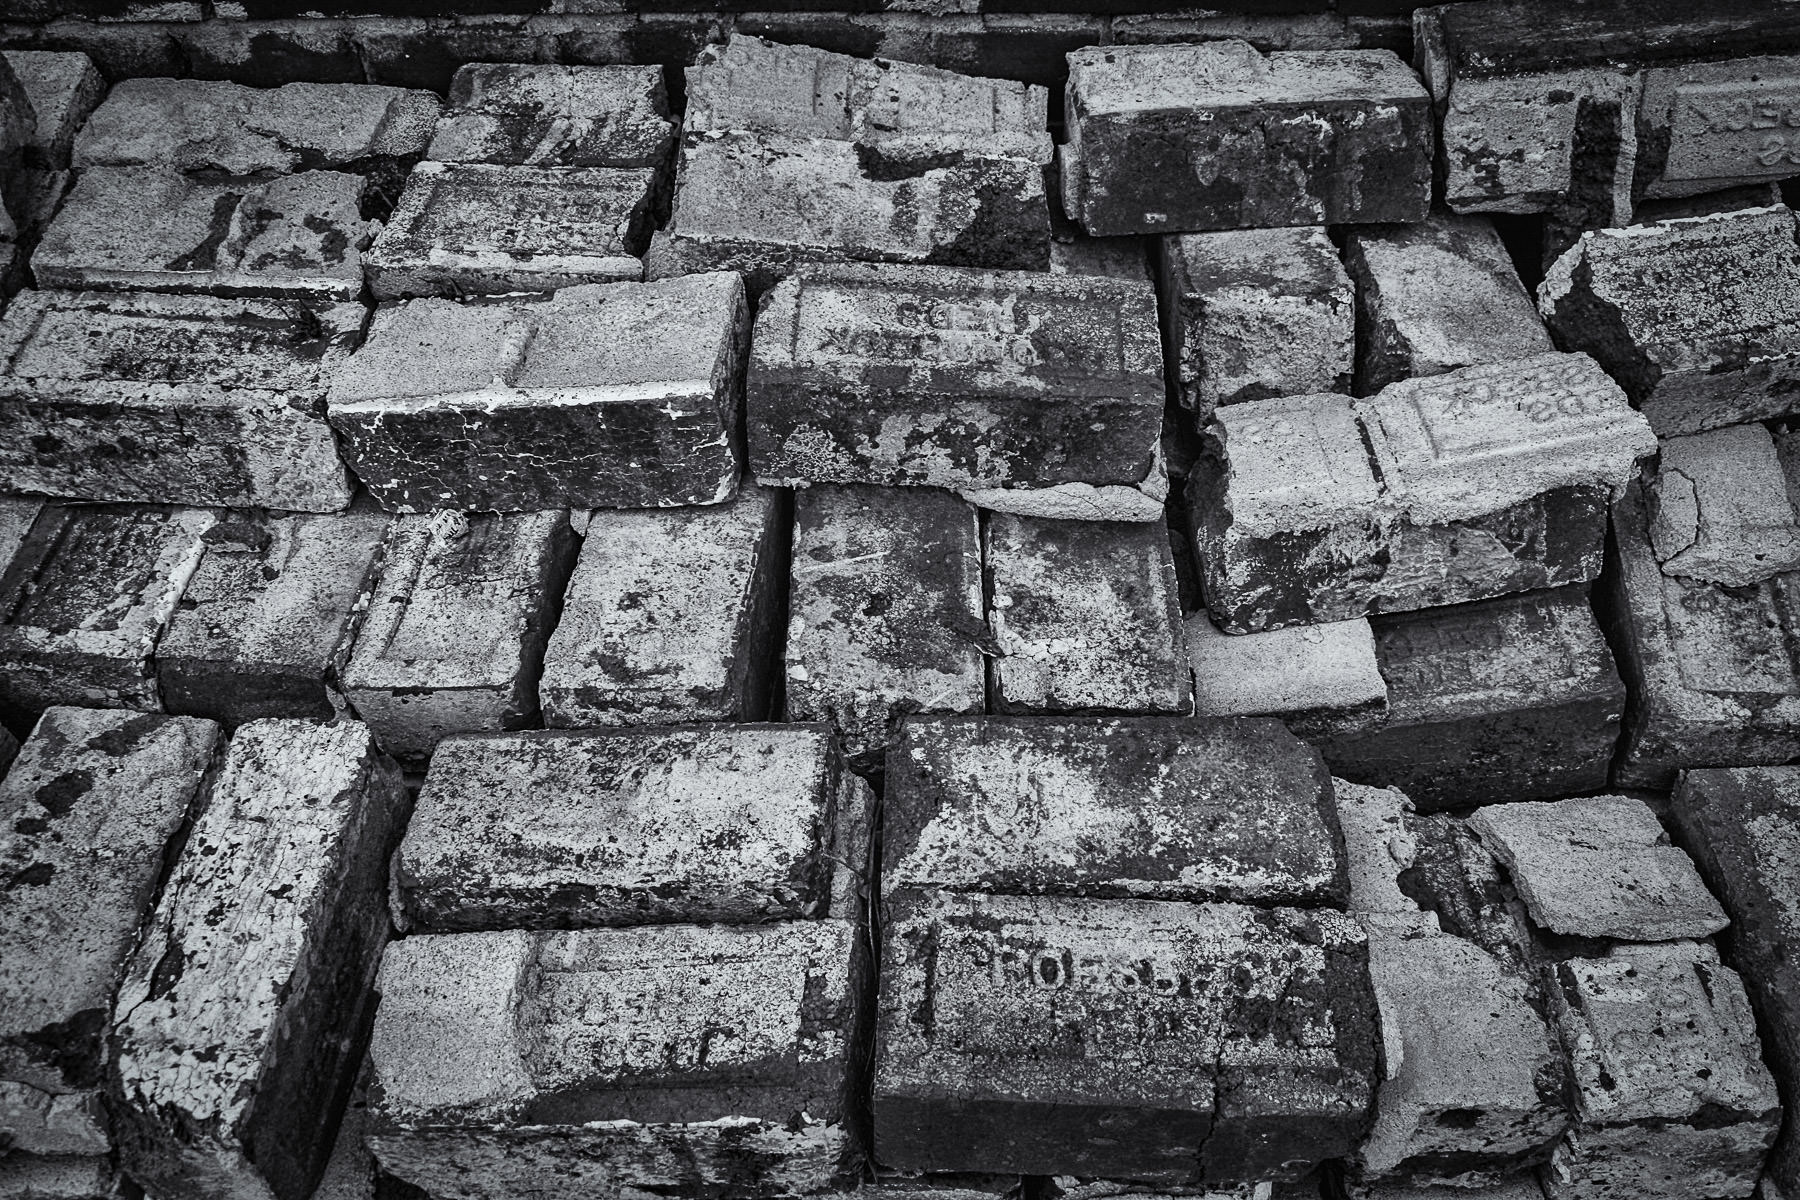 Bricks stacked neatly in a back alley in the tiny hamlet of Hico, Texas.